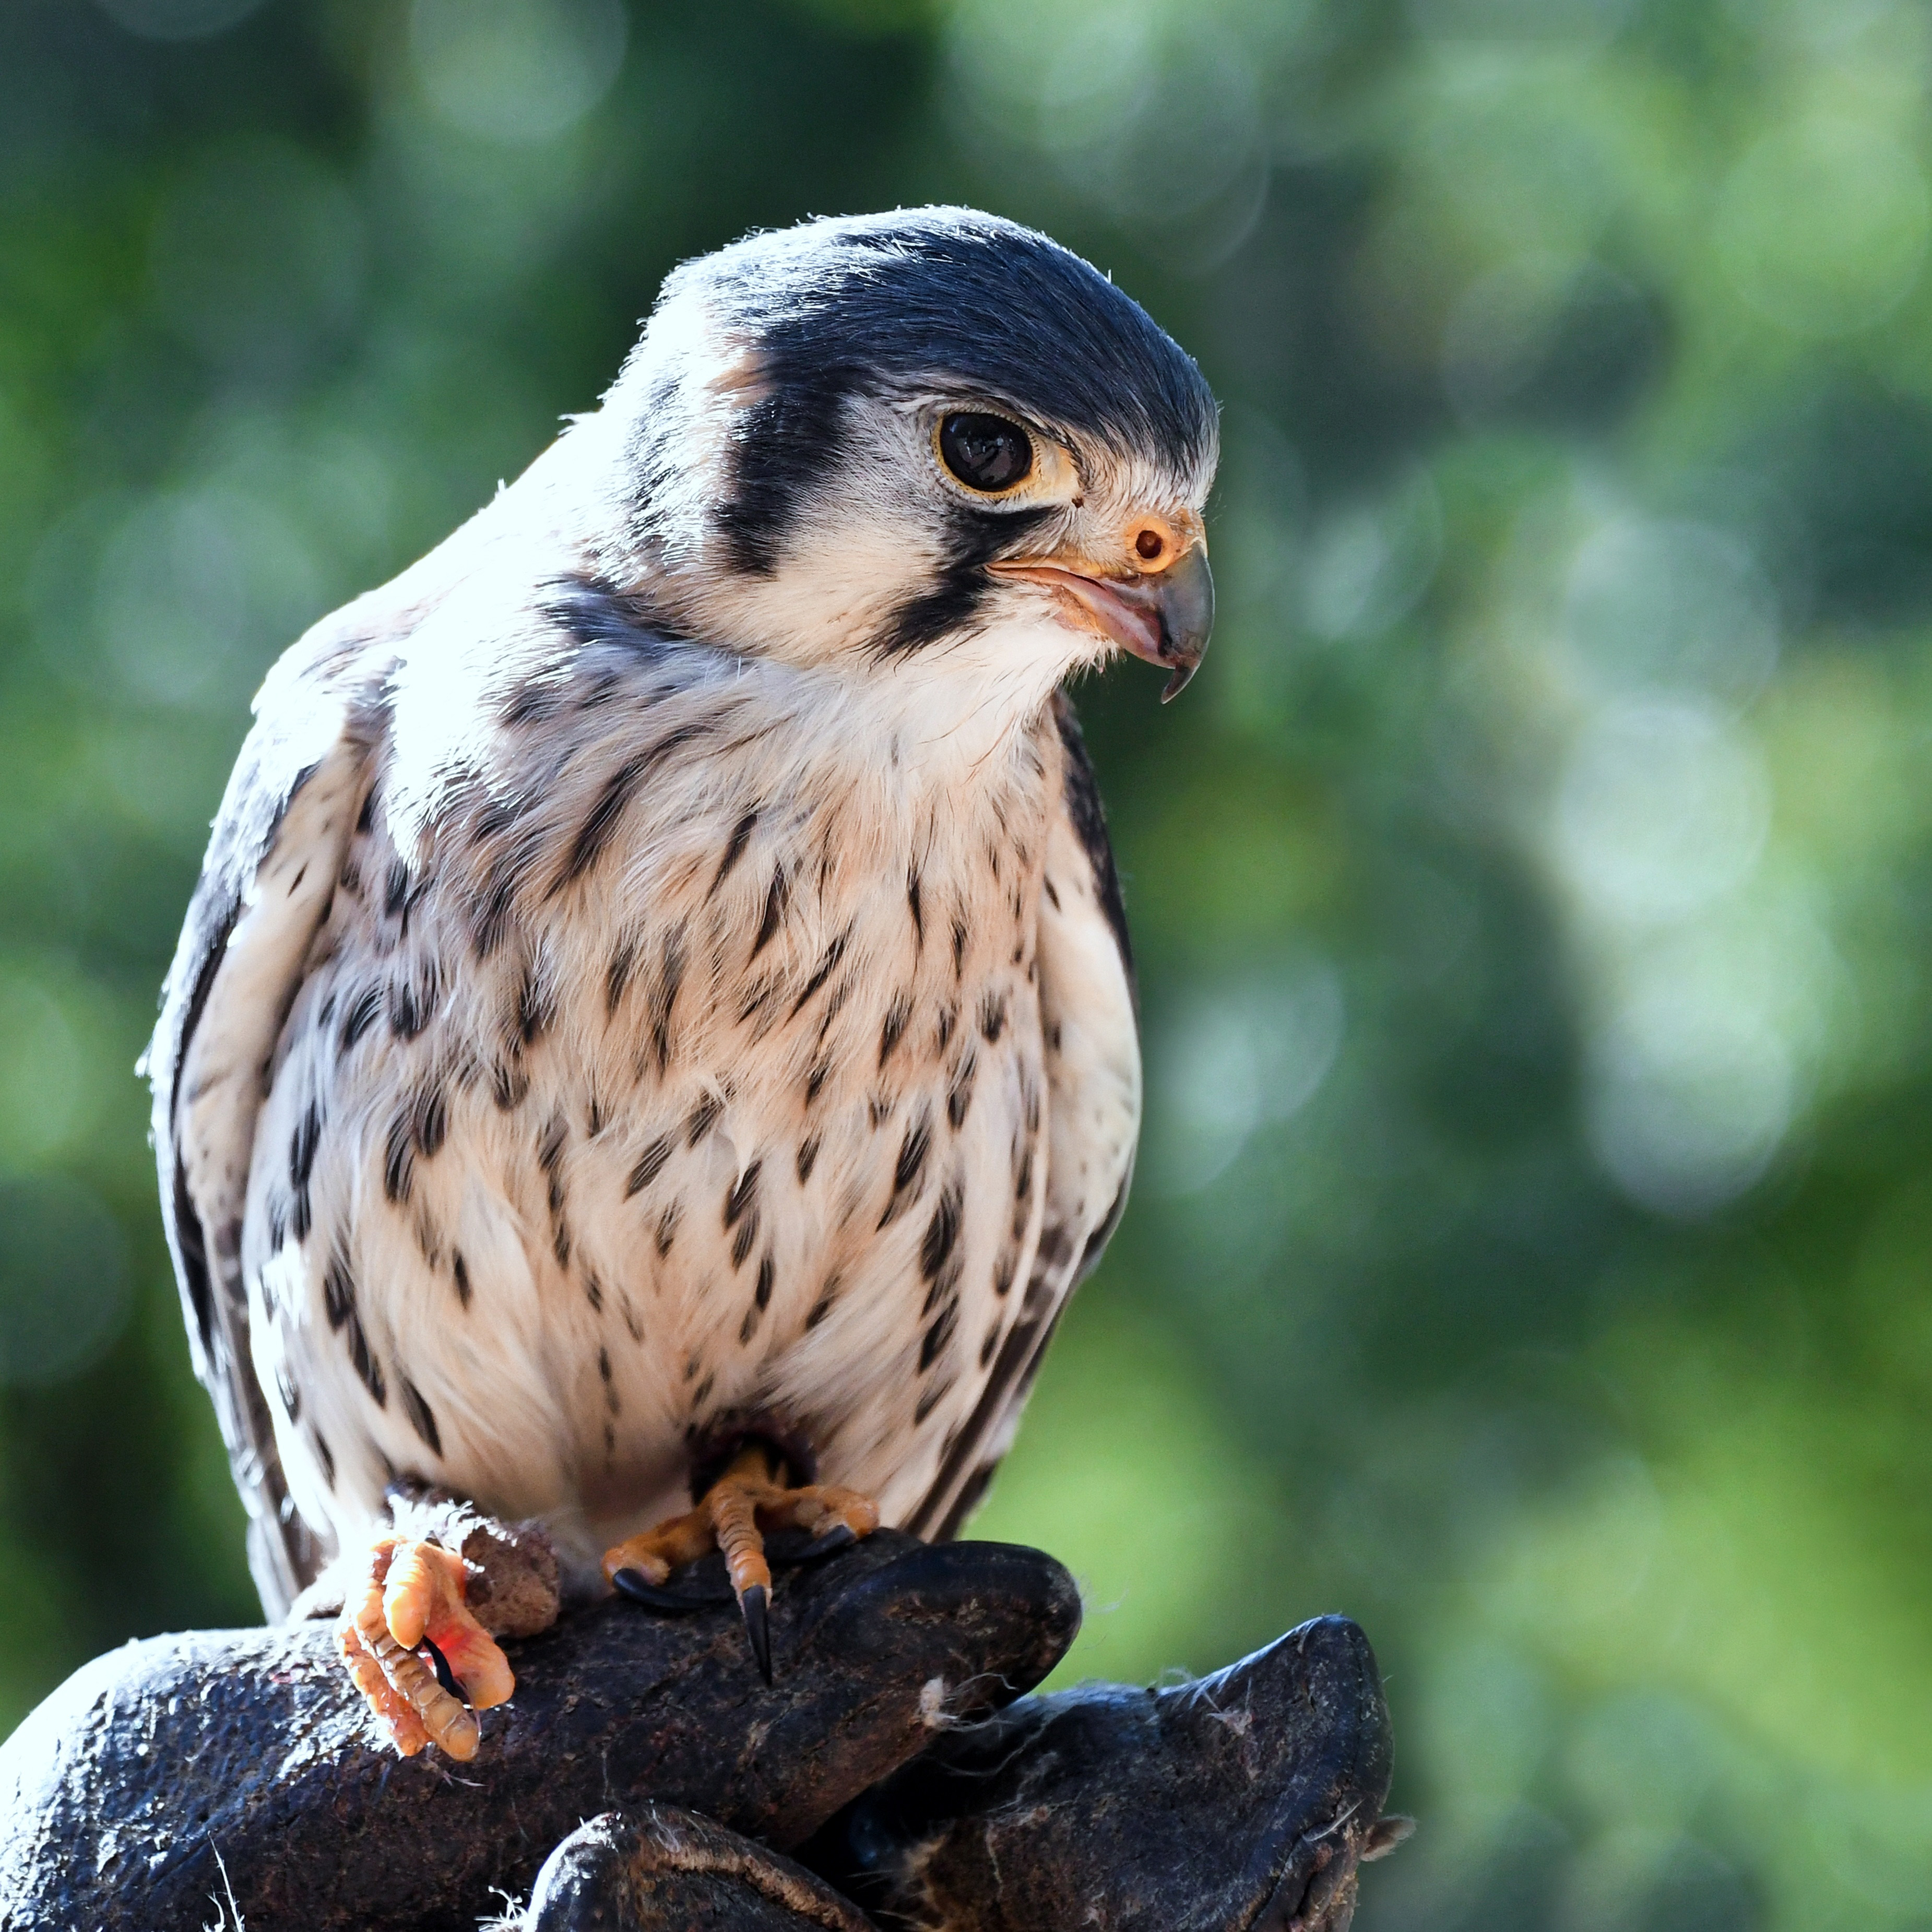 Baby Falcon Perched On Hands Image Free Stock Photo